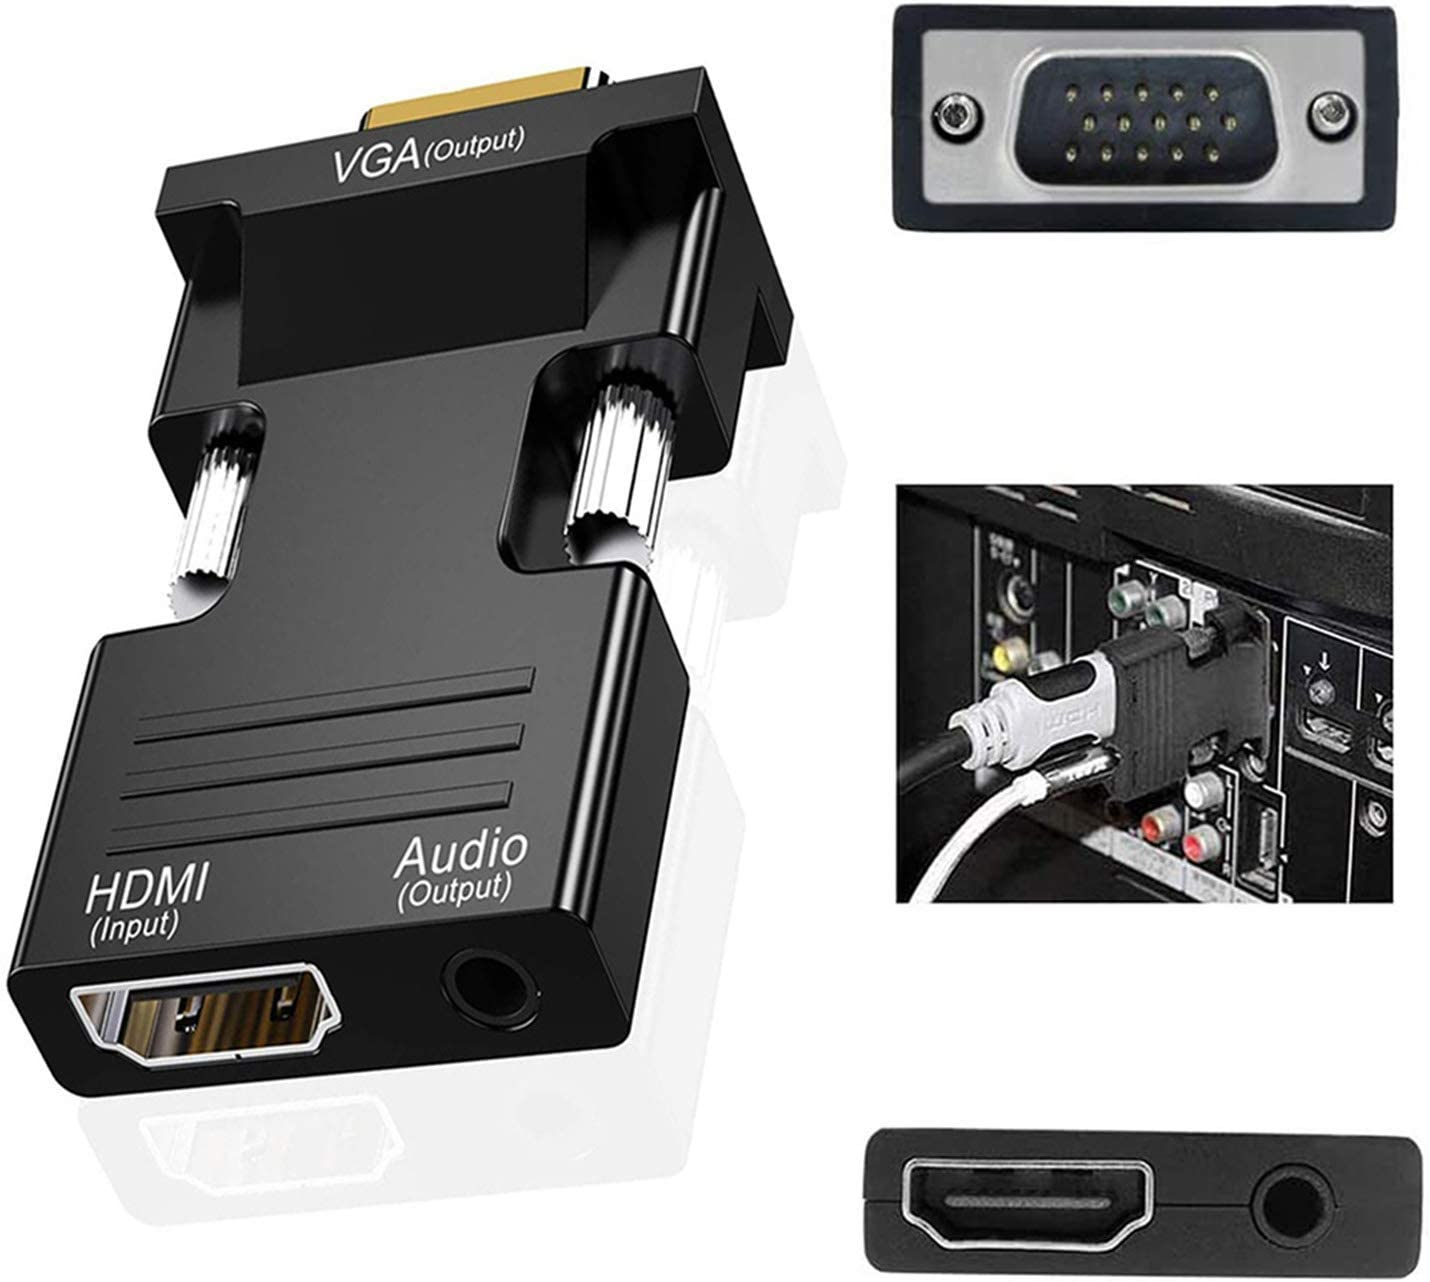 Projector YYBarbAnn HDMI to VGA Adapter Black Audio Output Cable Computer Set-top Box Converter Connector Adapter for Laptop PC Roku HDTV Xbox Monitor Chromebook